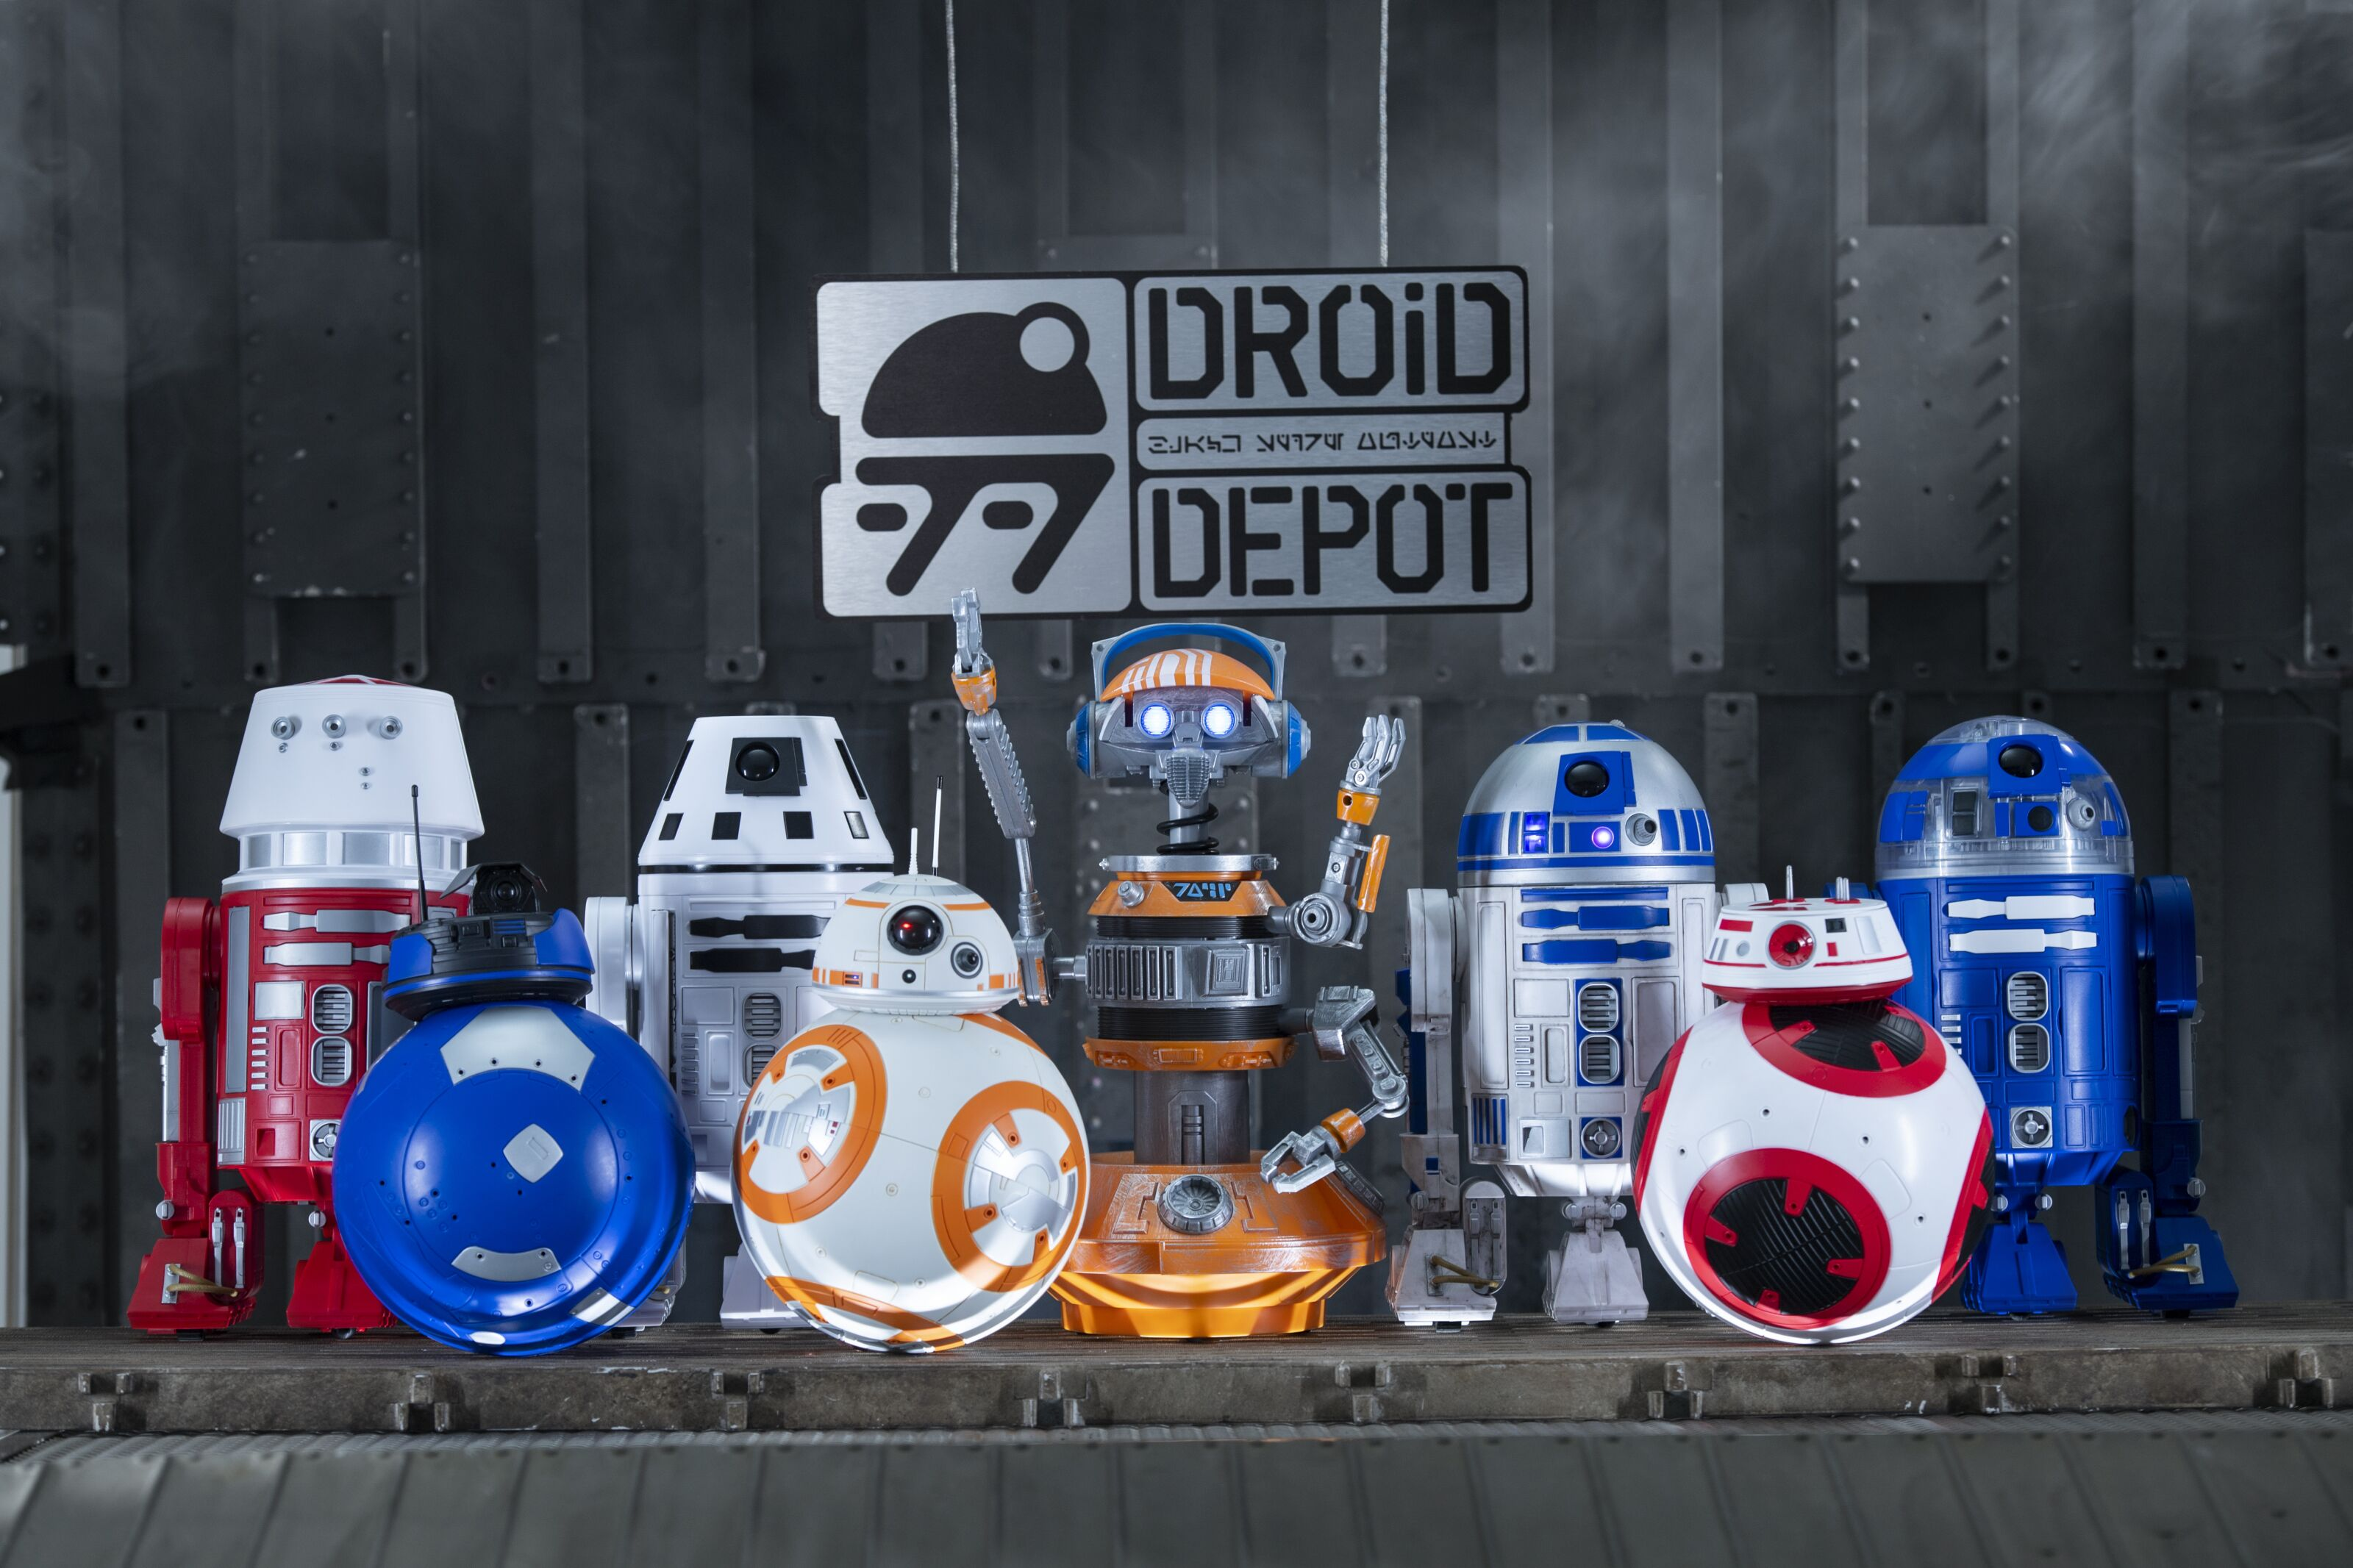 Get your credits ready for Star Wars: Galaxy's Edge merchandise